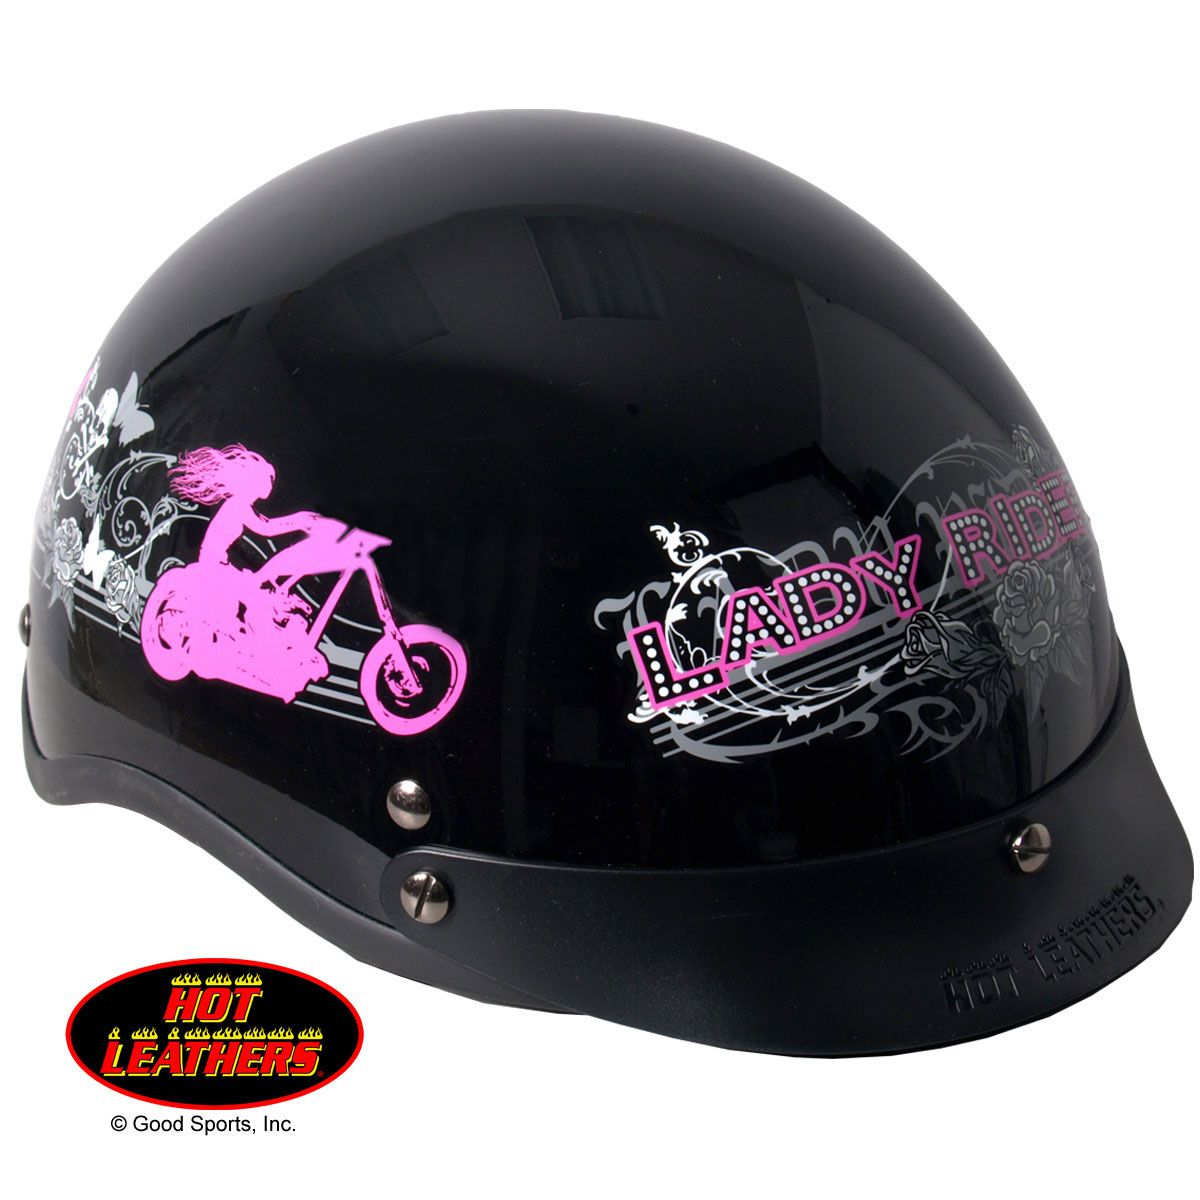 Motorcycle Helmet Decals For Ladies Custom Vinyl Decals - Vinyl decals for motorcycle helmets